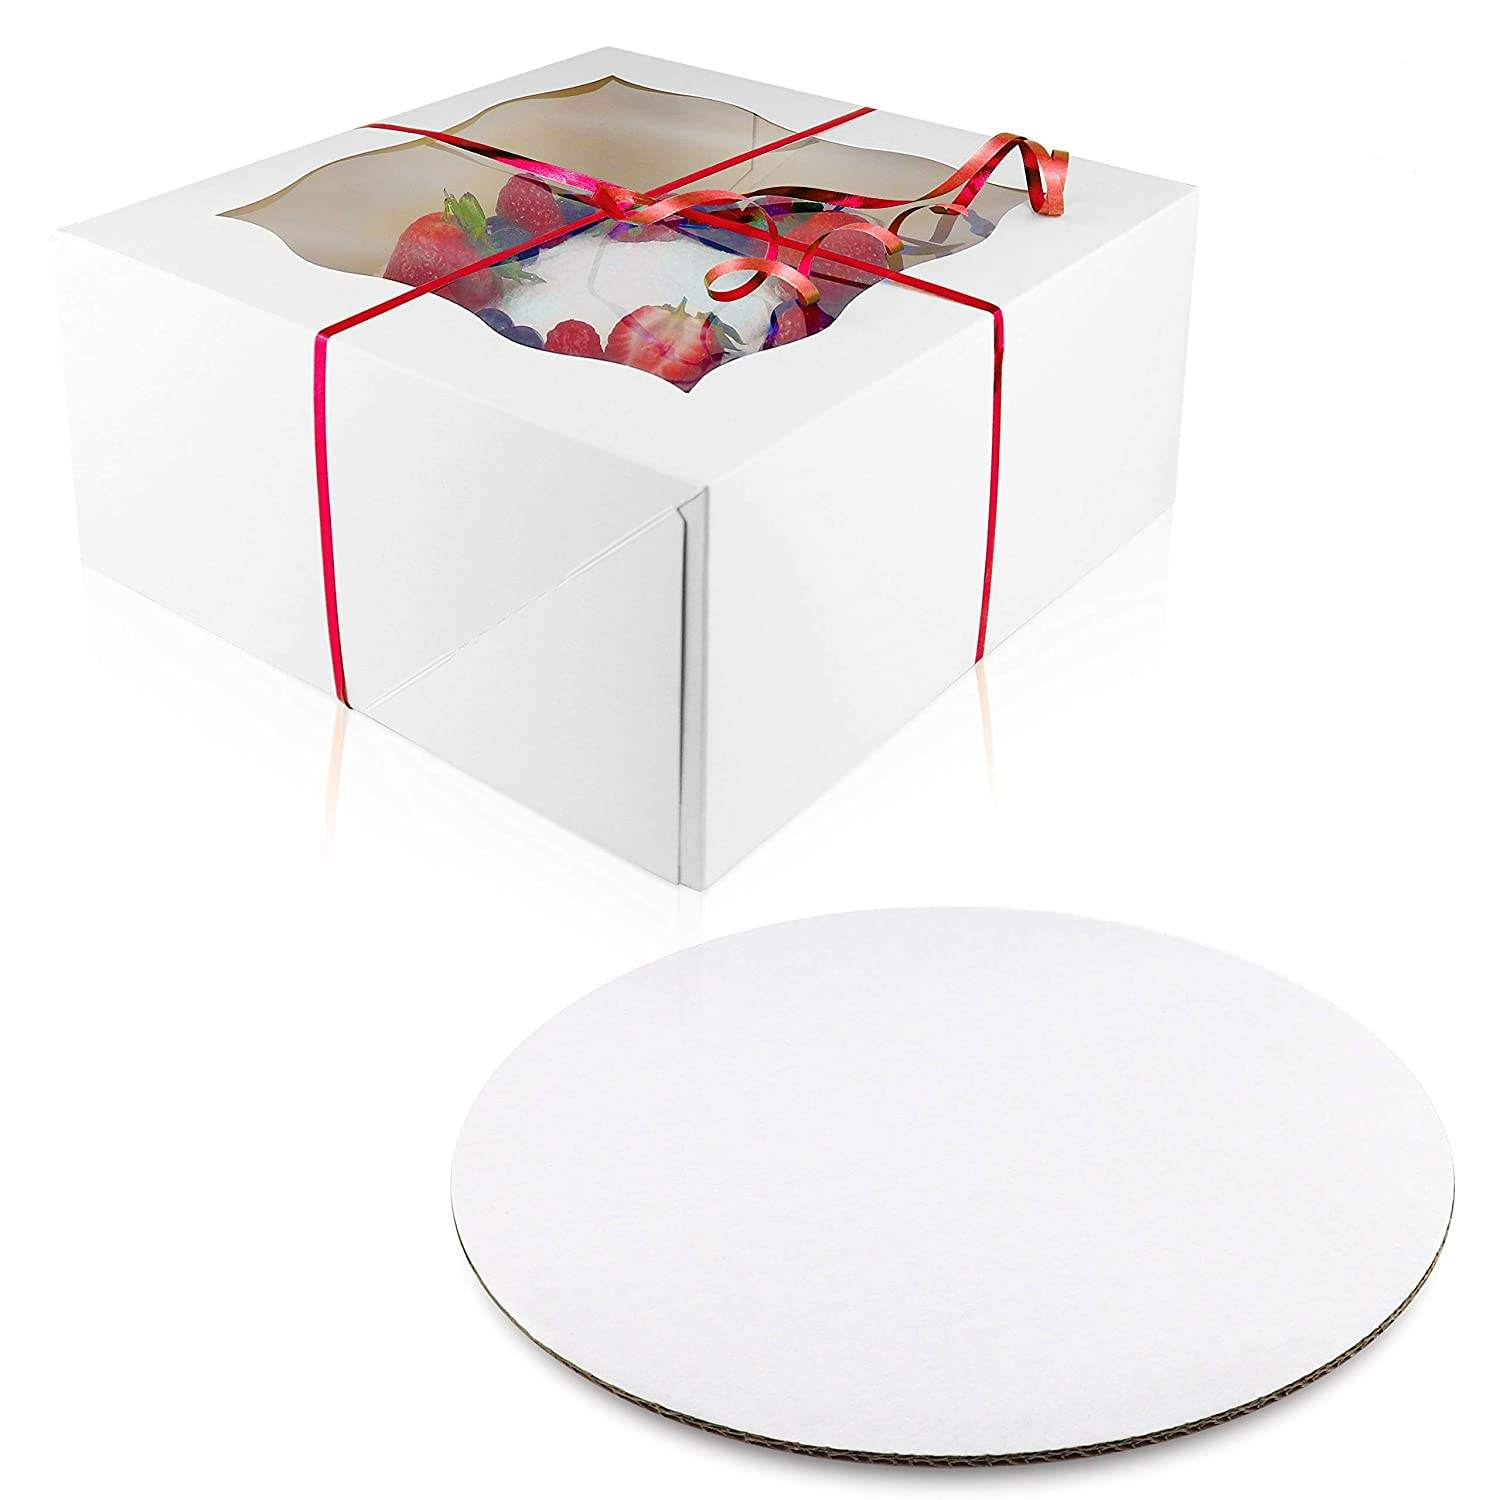 Cake Boards Set Sturdy Cake Boxes 10 x 10 x 5cm 10 Inch Boards Window Cardboard Round Cake Boards Boxes